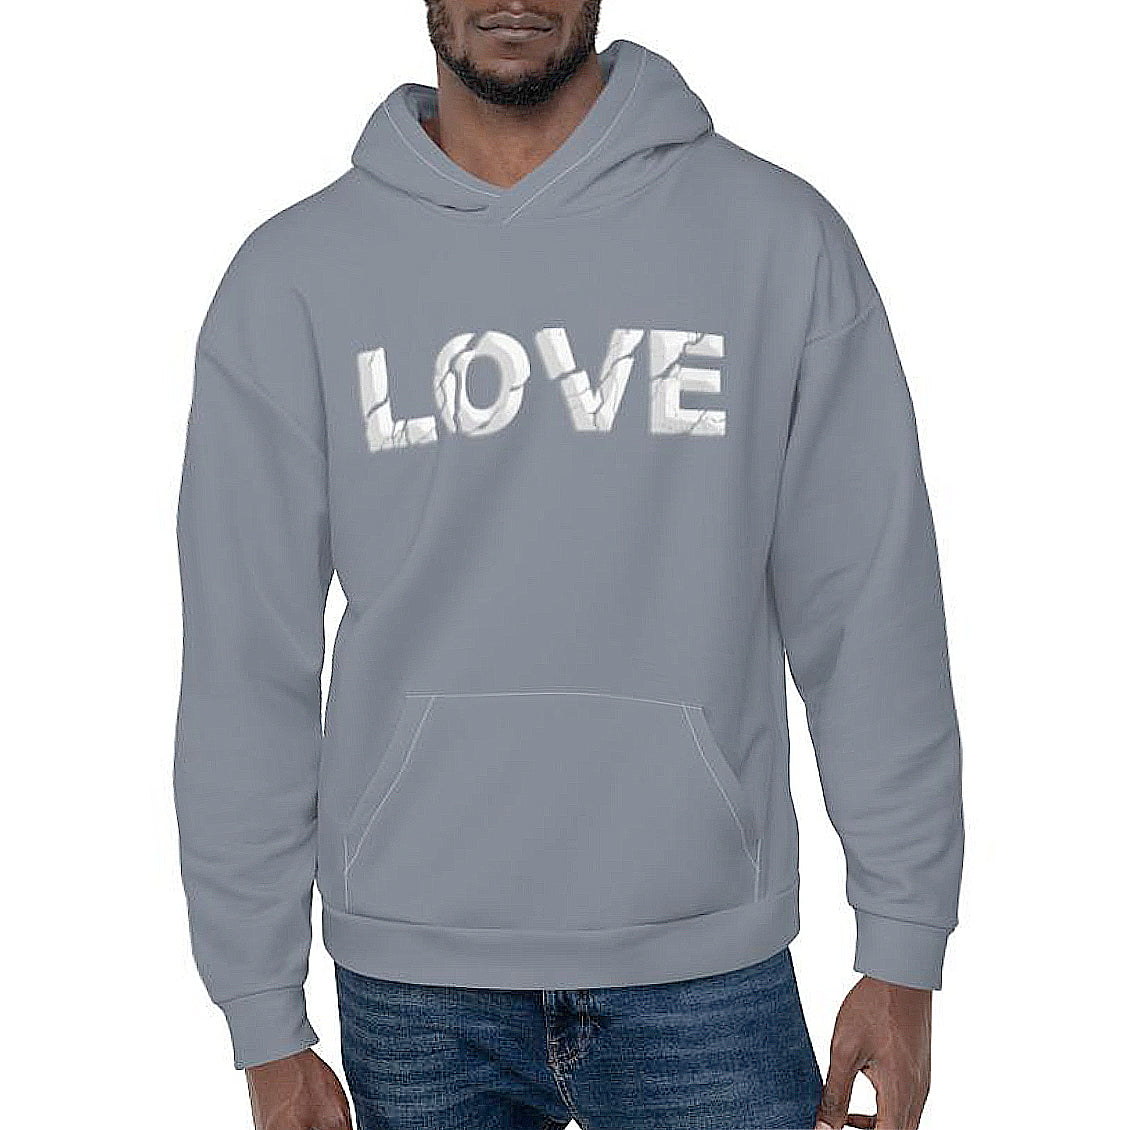 LOVE ERODED 3D PRINT HOODIE - CLOUDY BLUE